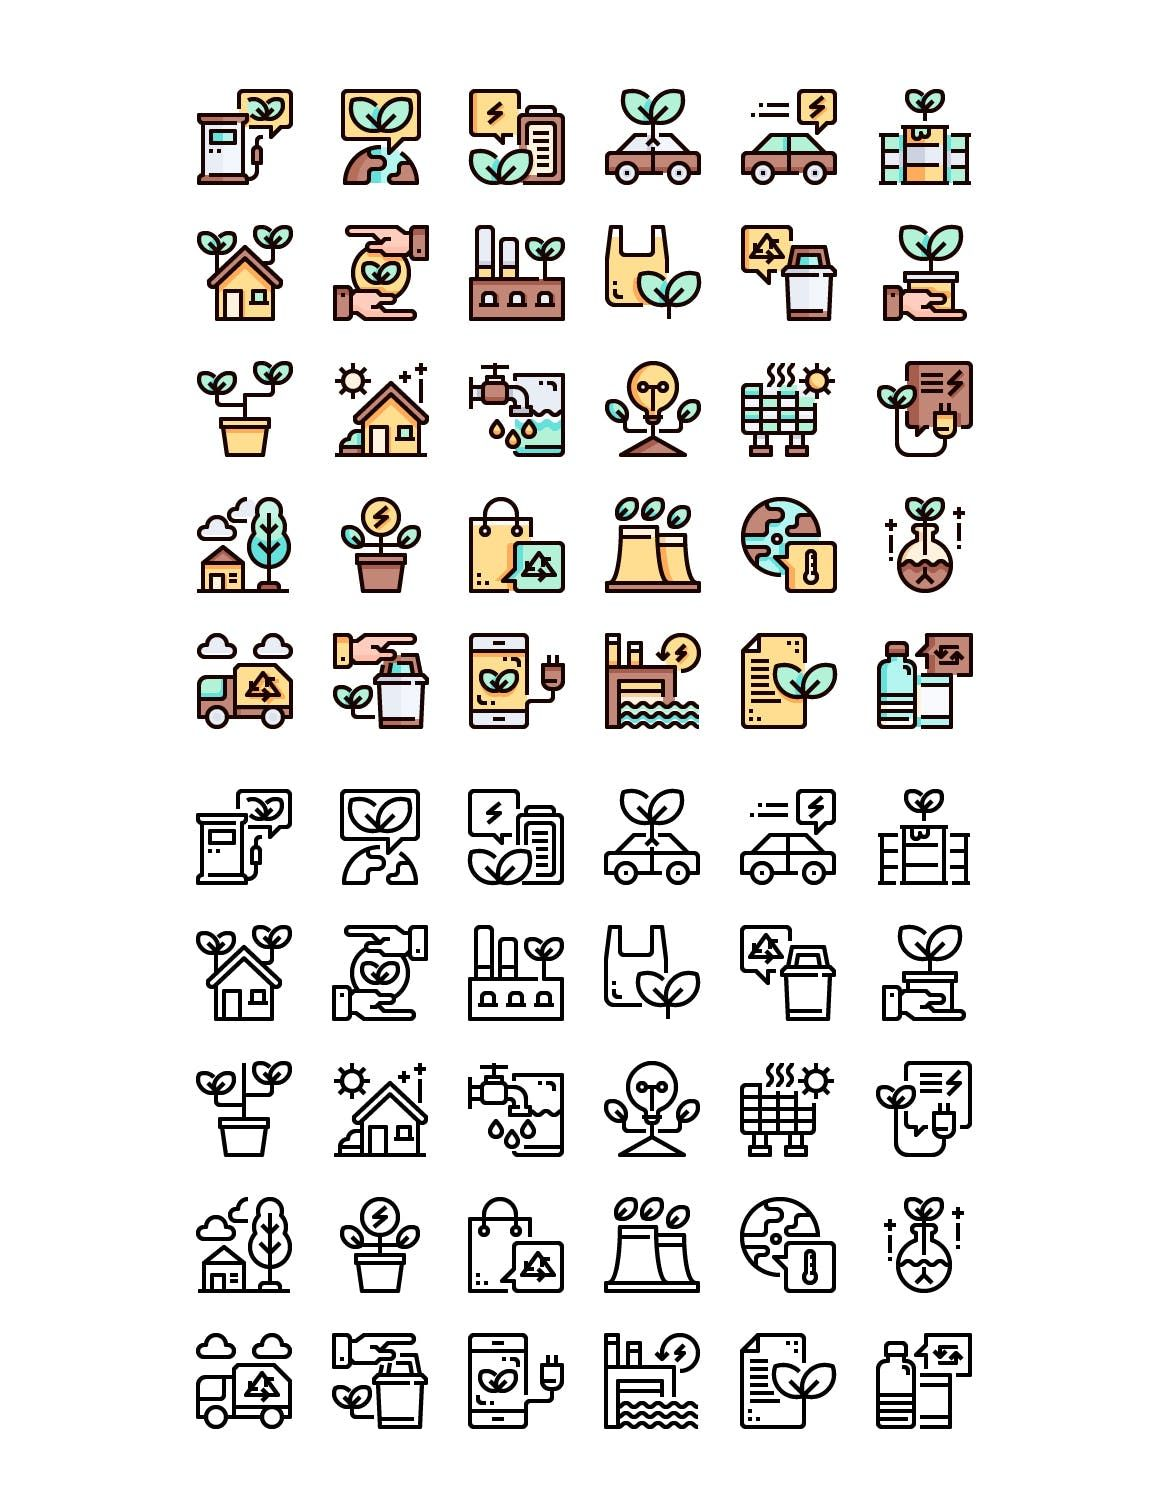 30 Dental Care Icon set by Justicon on Icon set, Dental